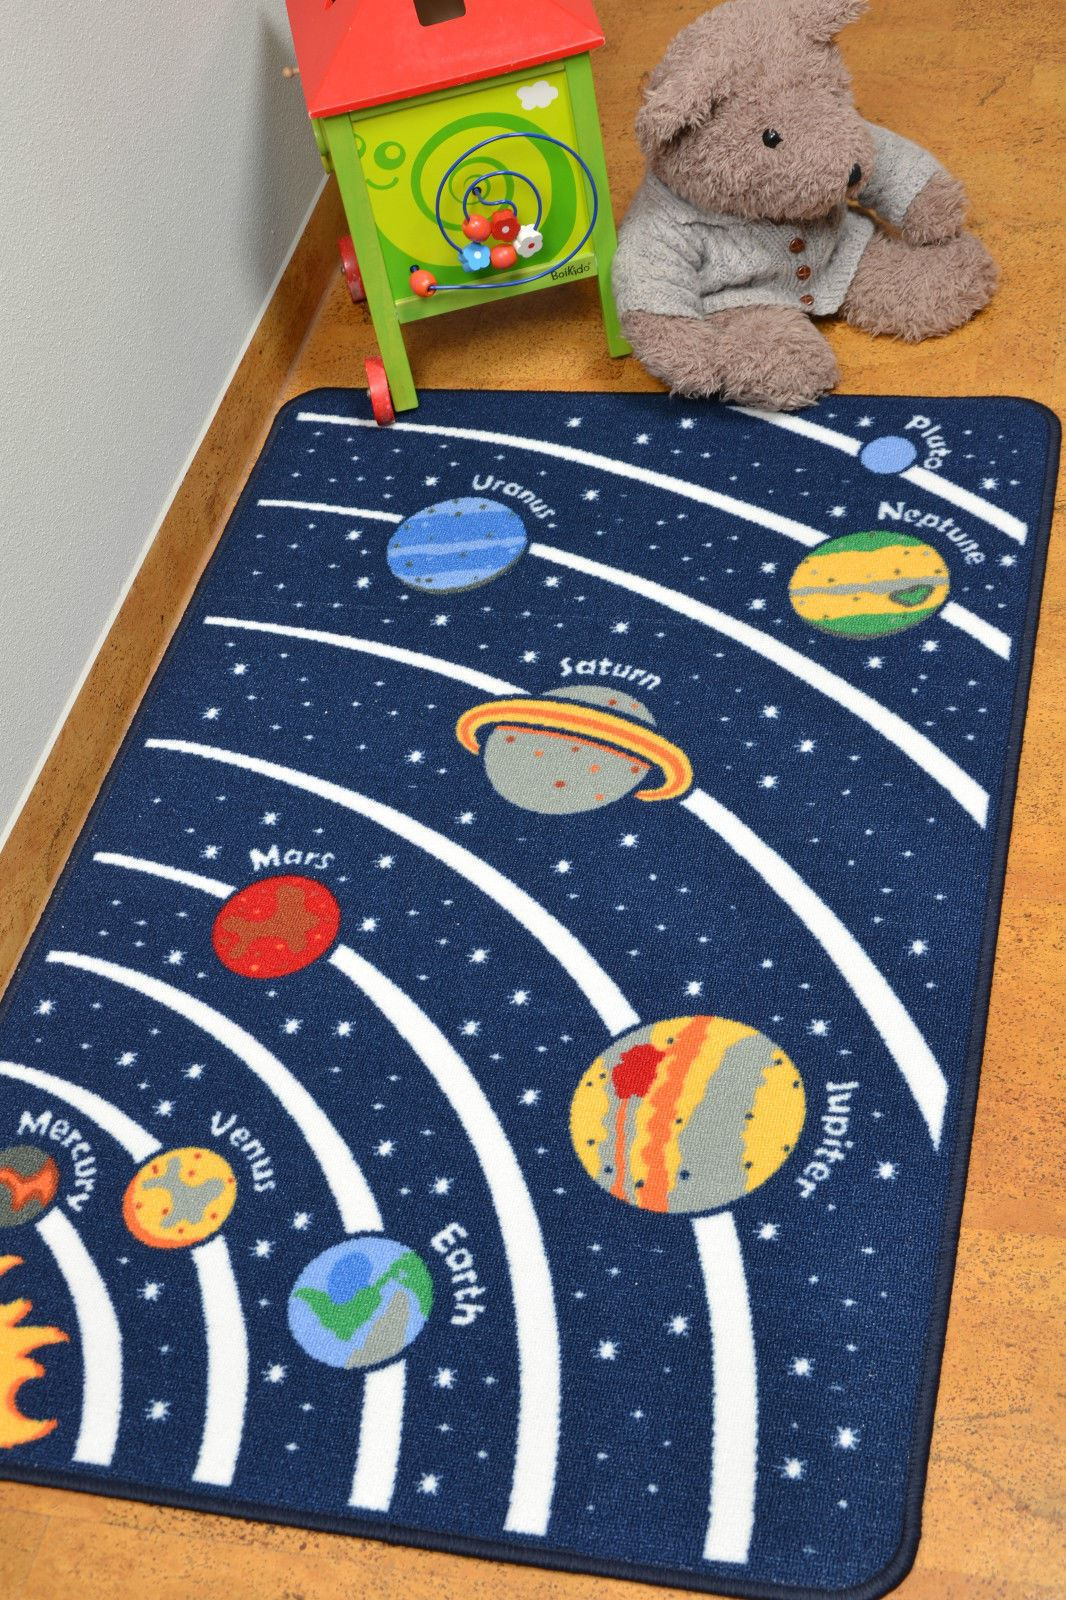 kids play mats roads farm letters children carpet educational fun floor mat rugs ebay. Black Bedroom Furniture Sets. Home Design Ideas